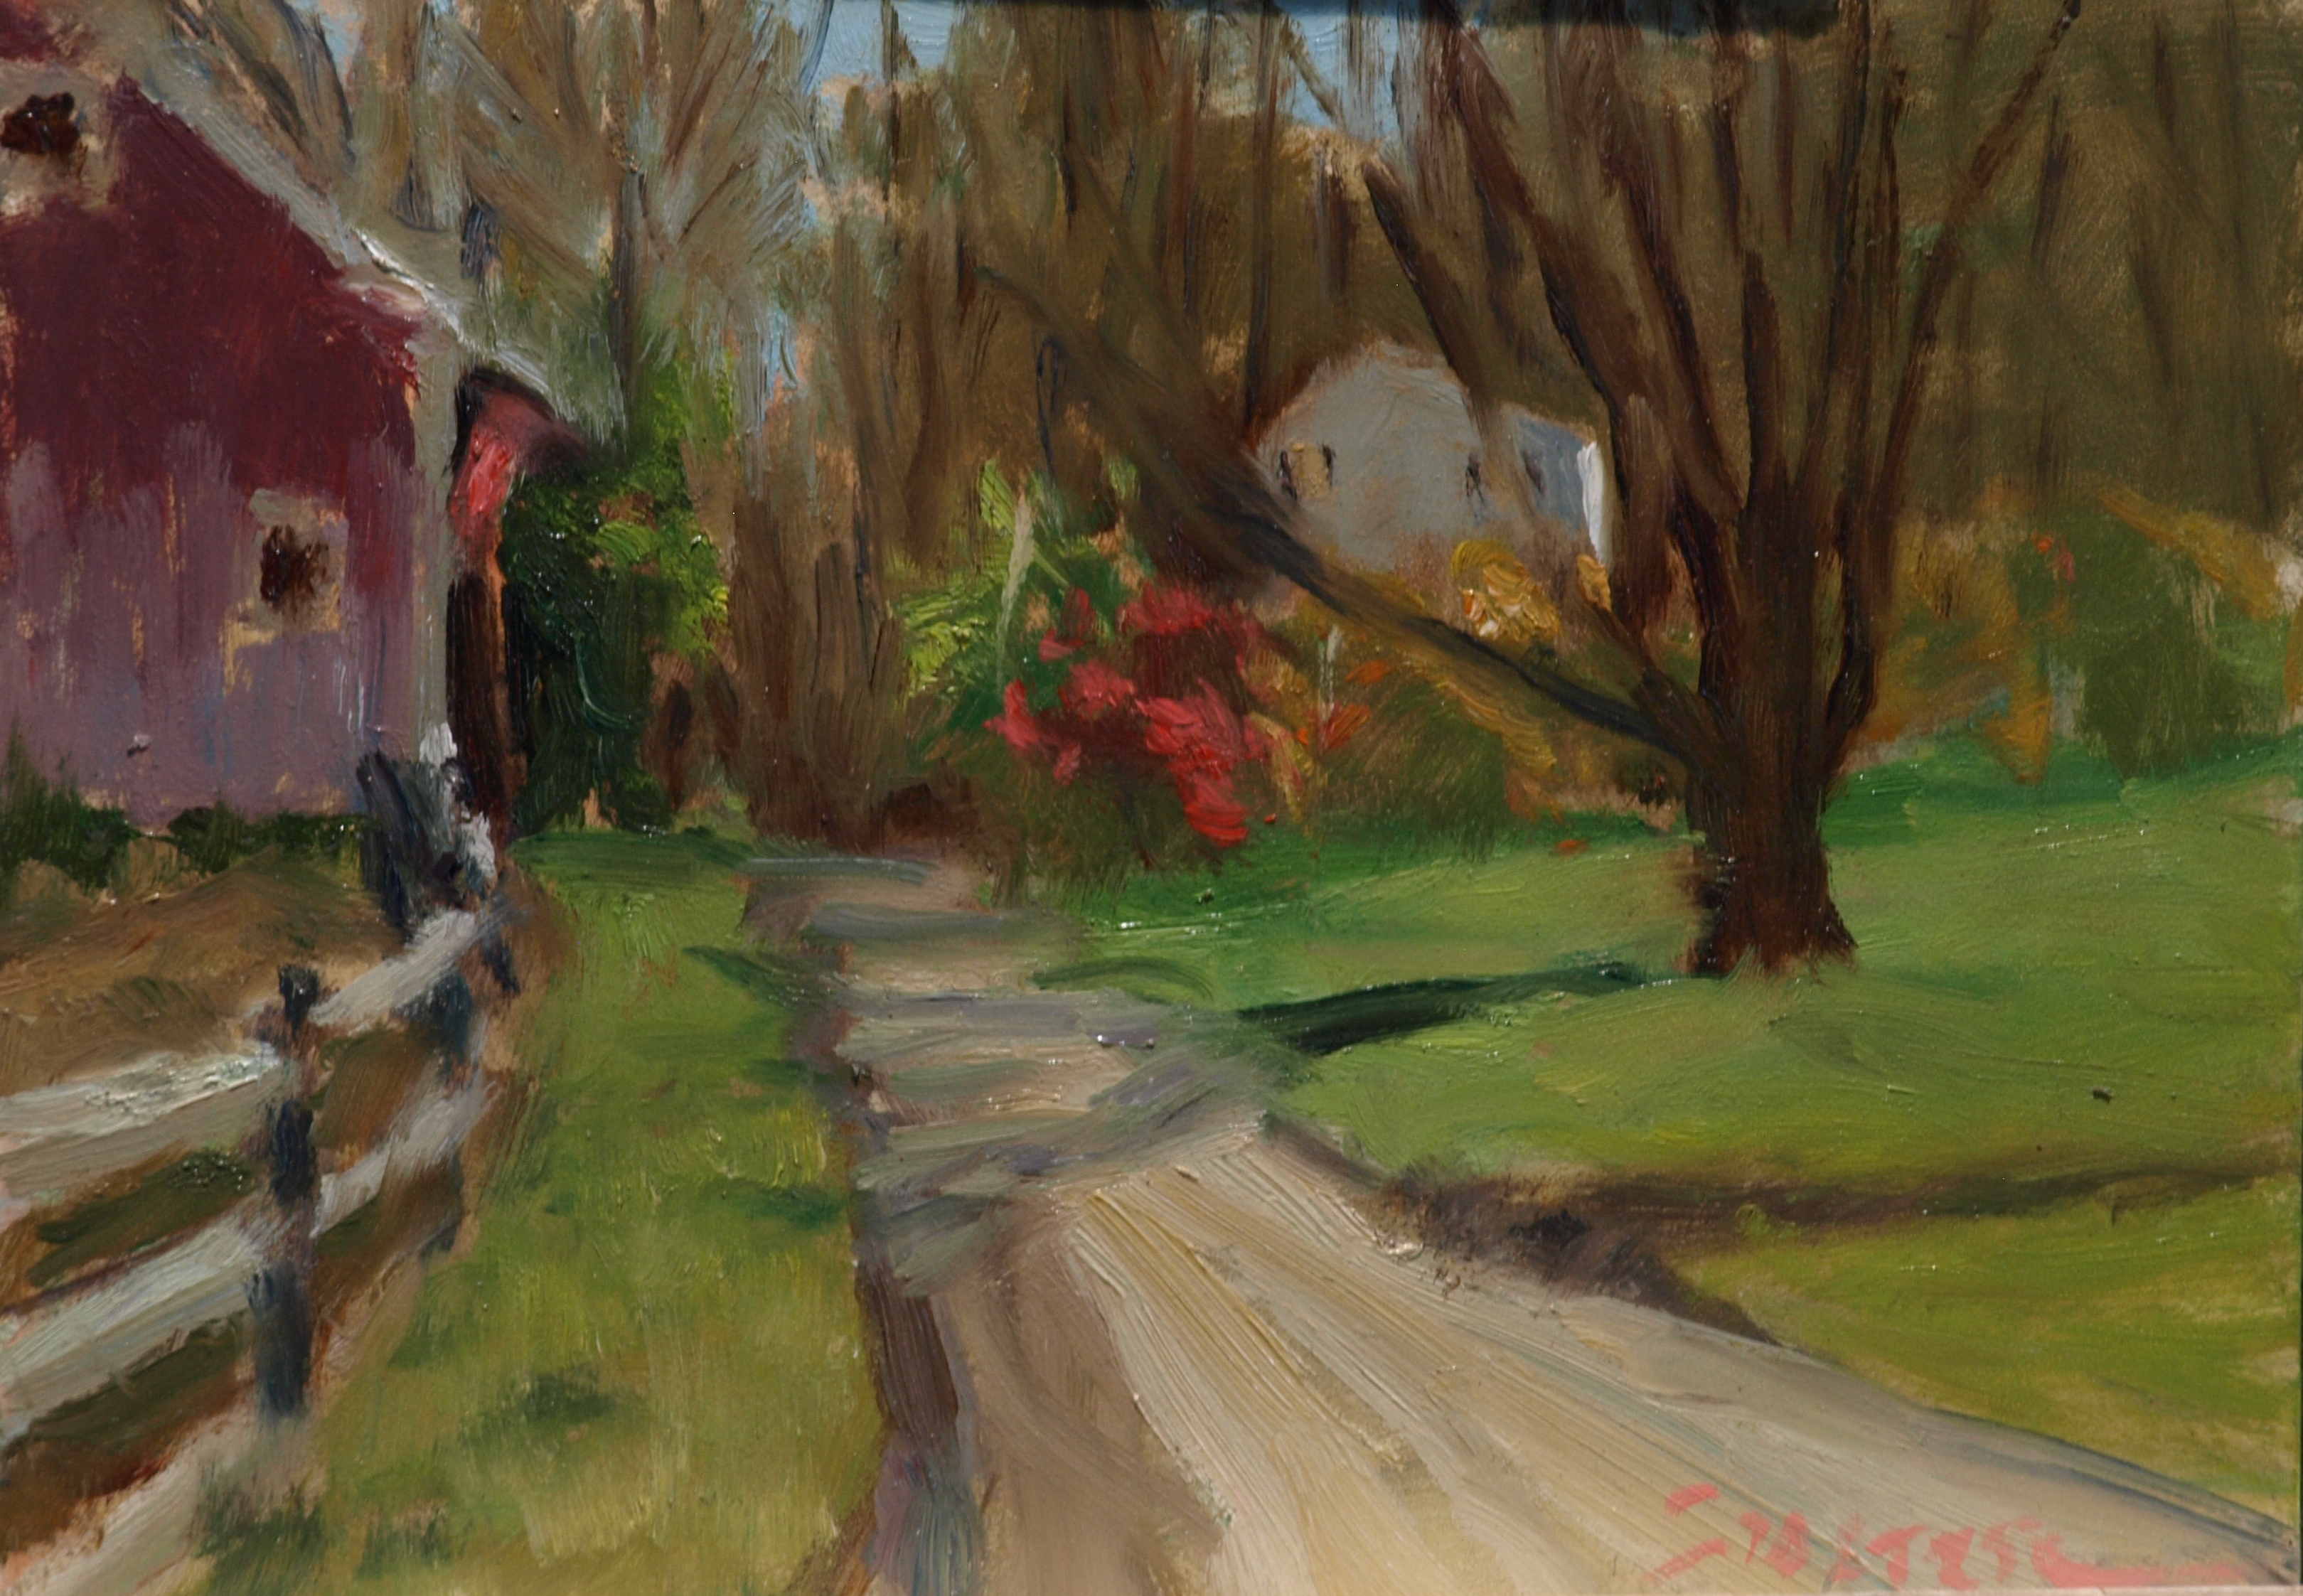 Bright Fall Day, Oil on Canvas on Panel, 9 x 12 Inches, by Richard Stalter, $225